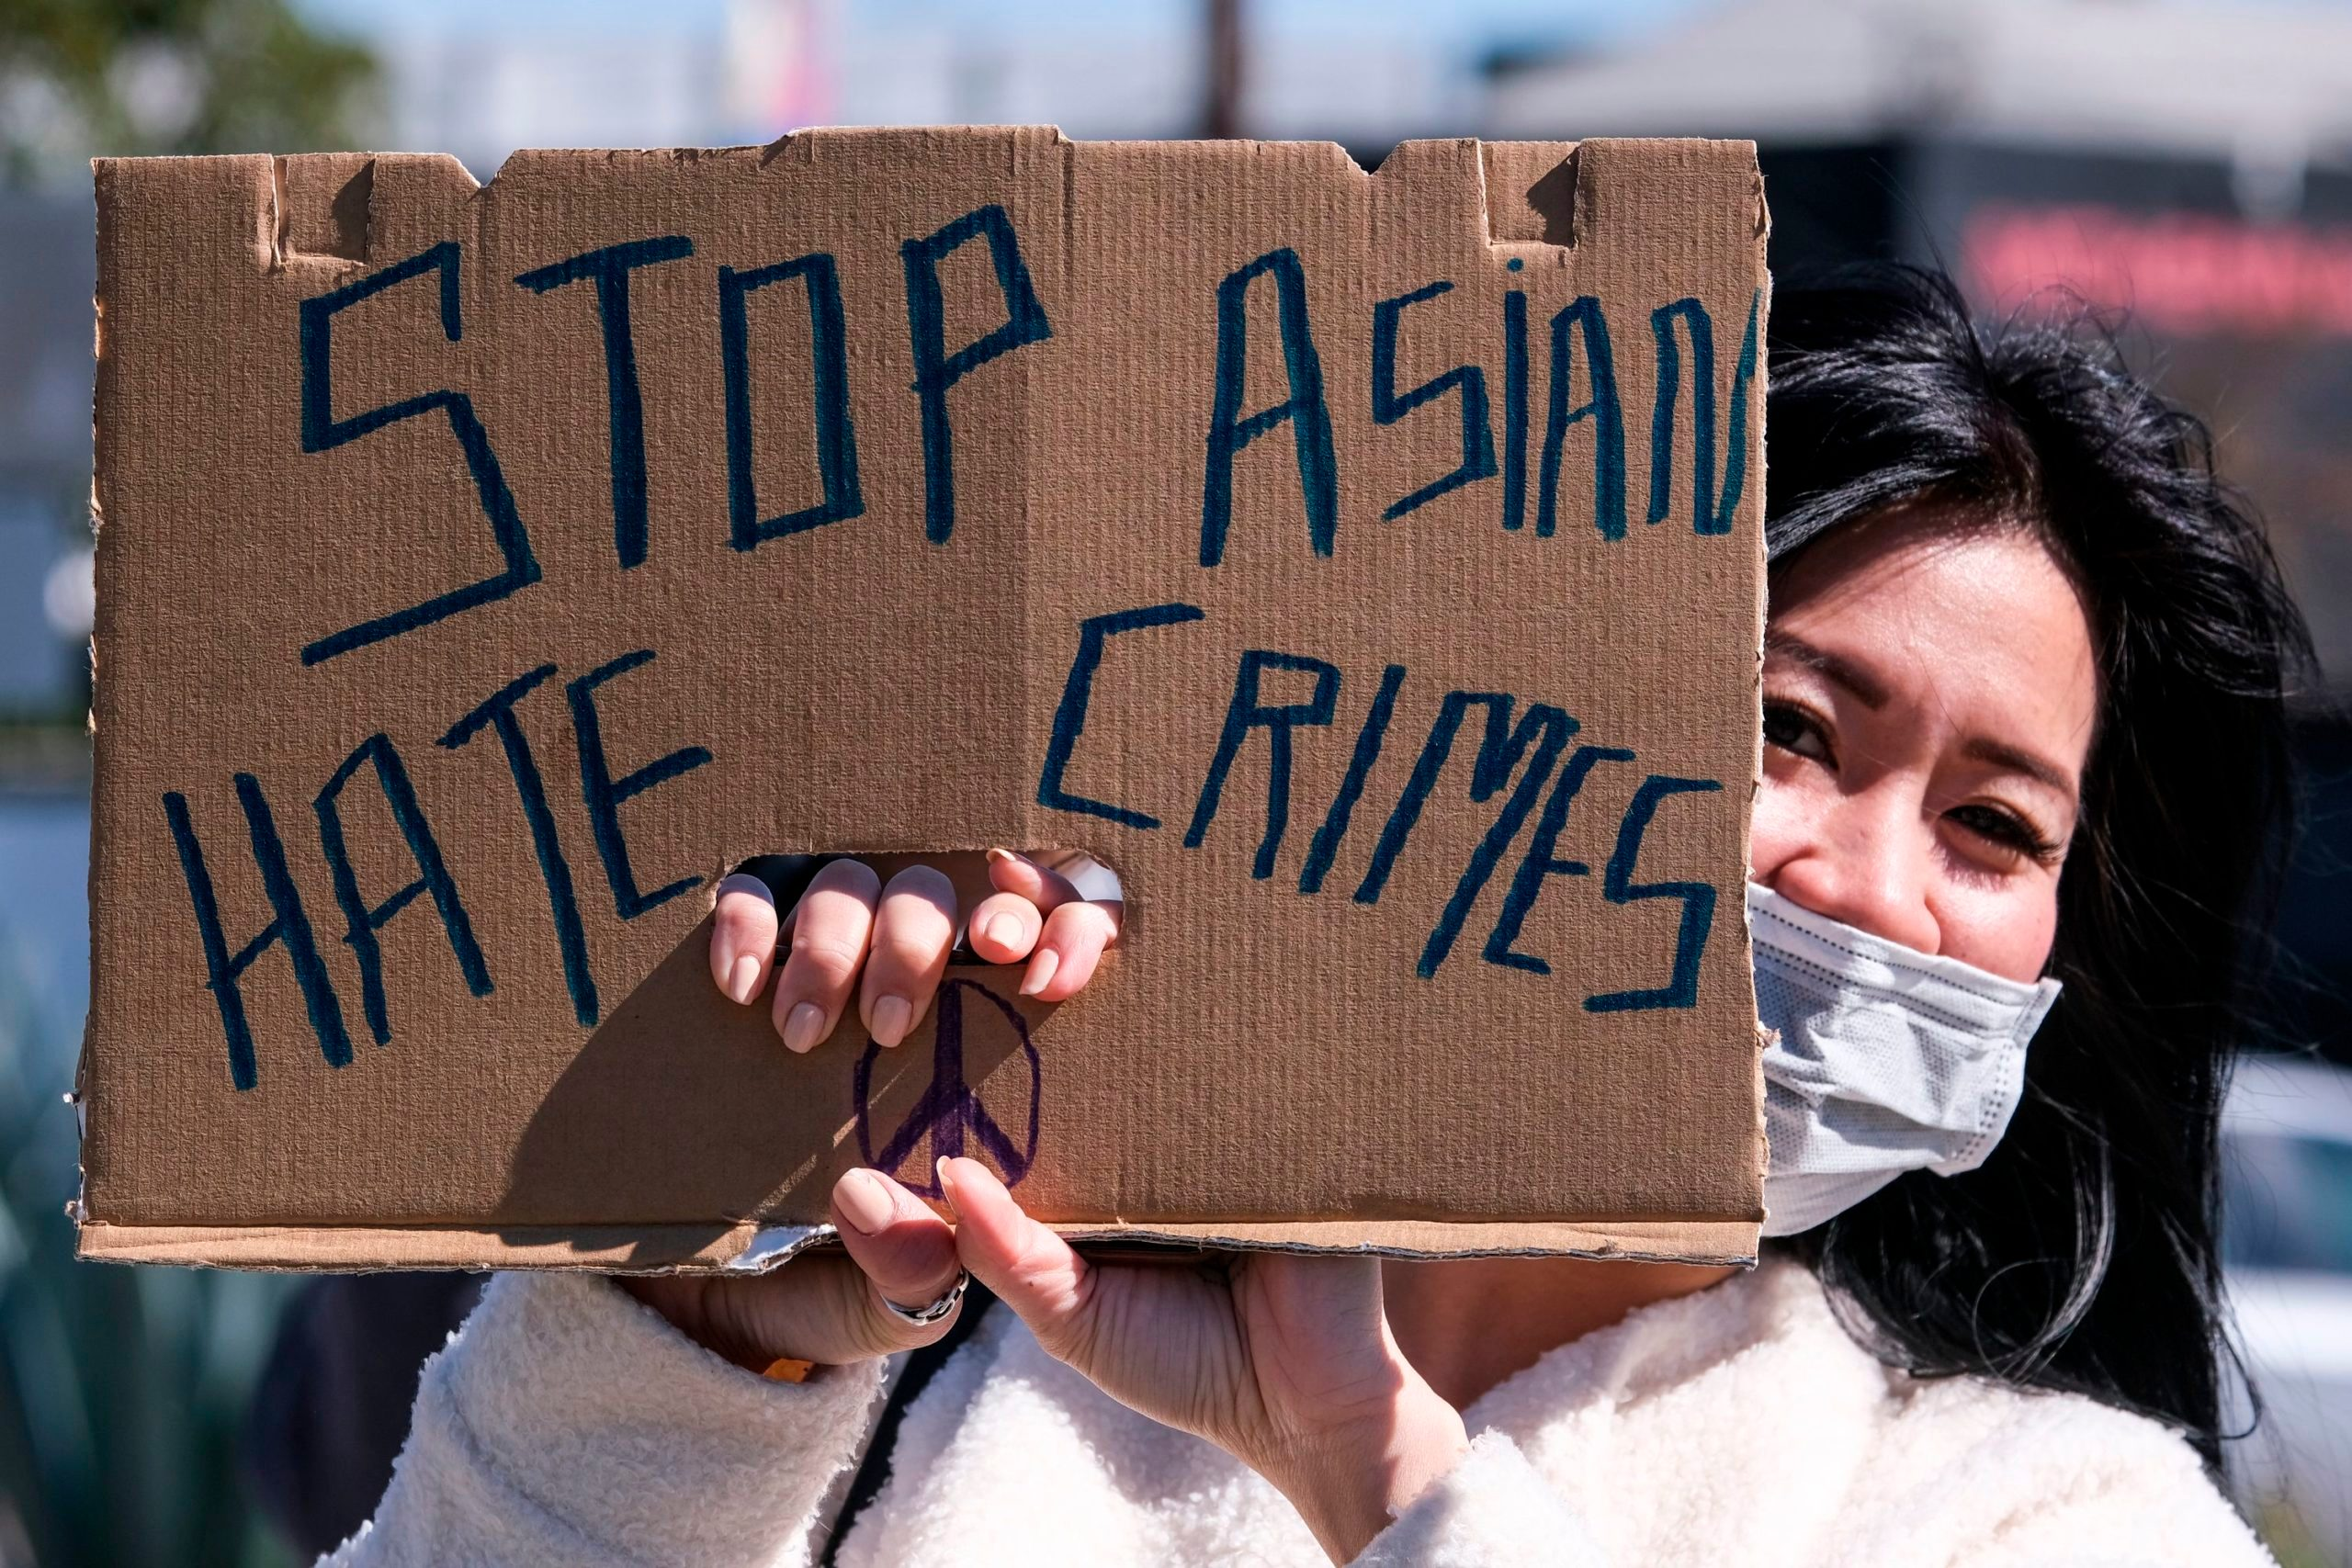 A demonstrator wearing a face mask and holding a sign takes part in a rally to raise awareness of anti-Asian violence, near Chinatown in Los Angeles, California, on February 20, 2021.